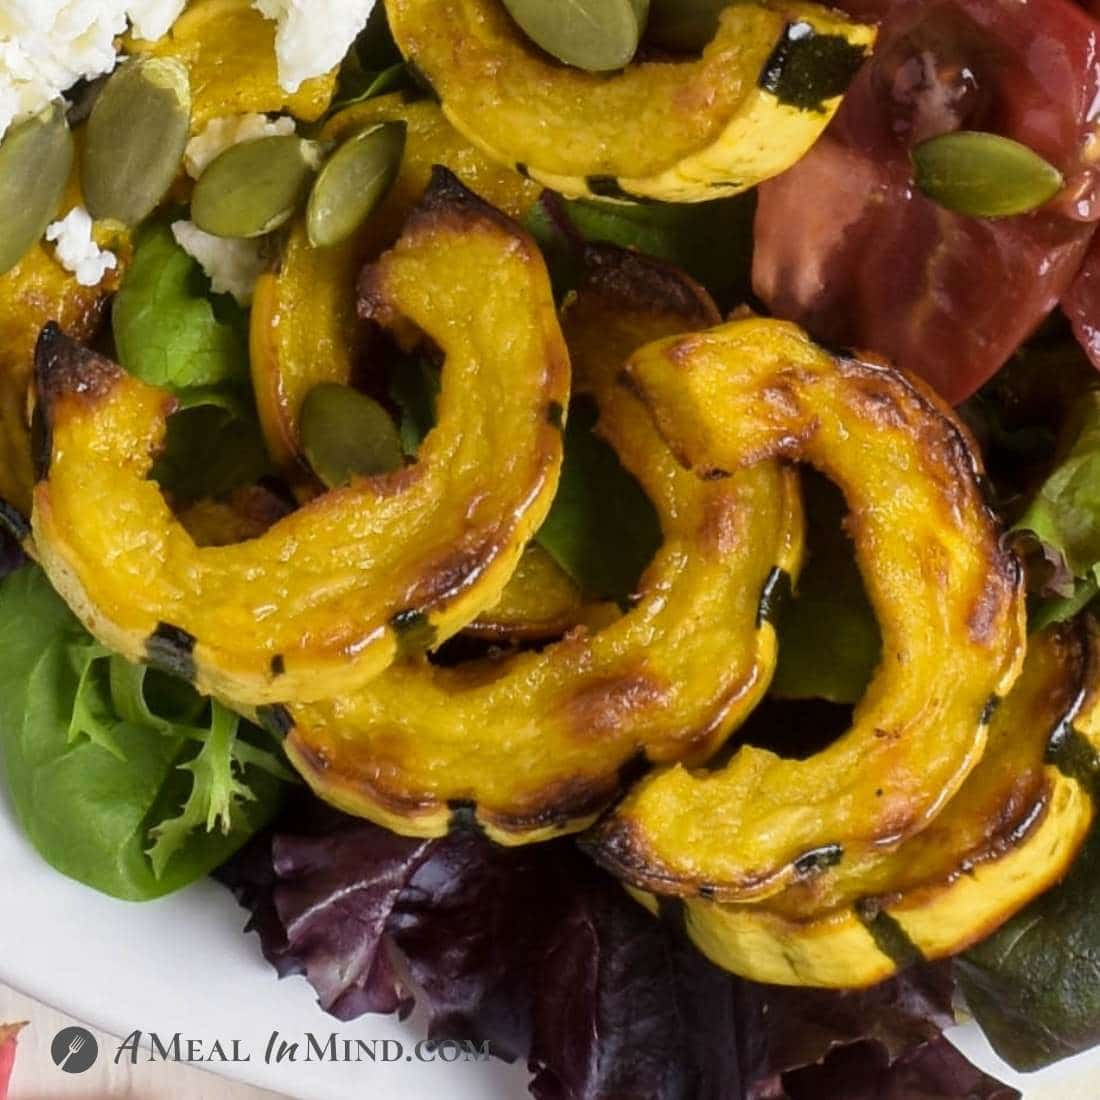 close-up of roasted slices of delicata squash